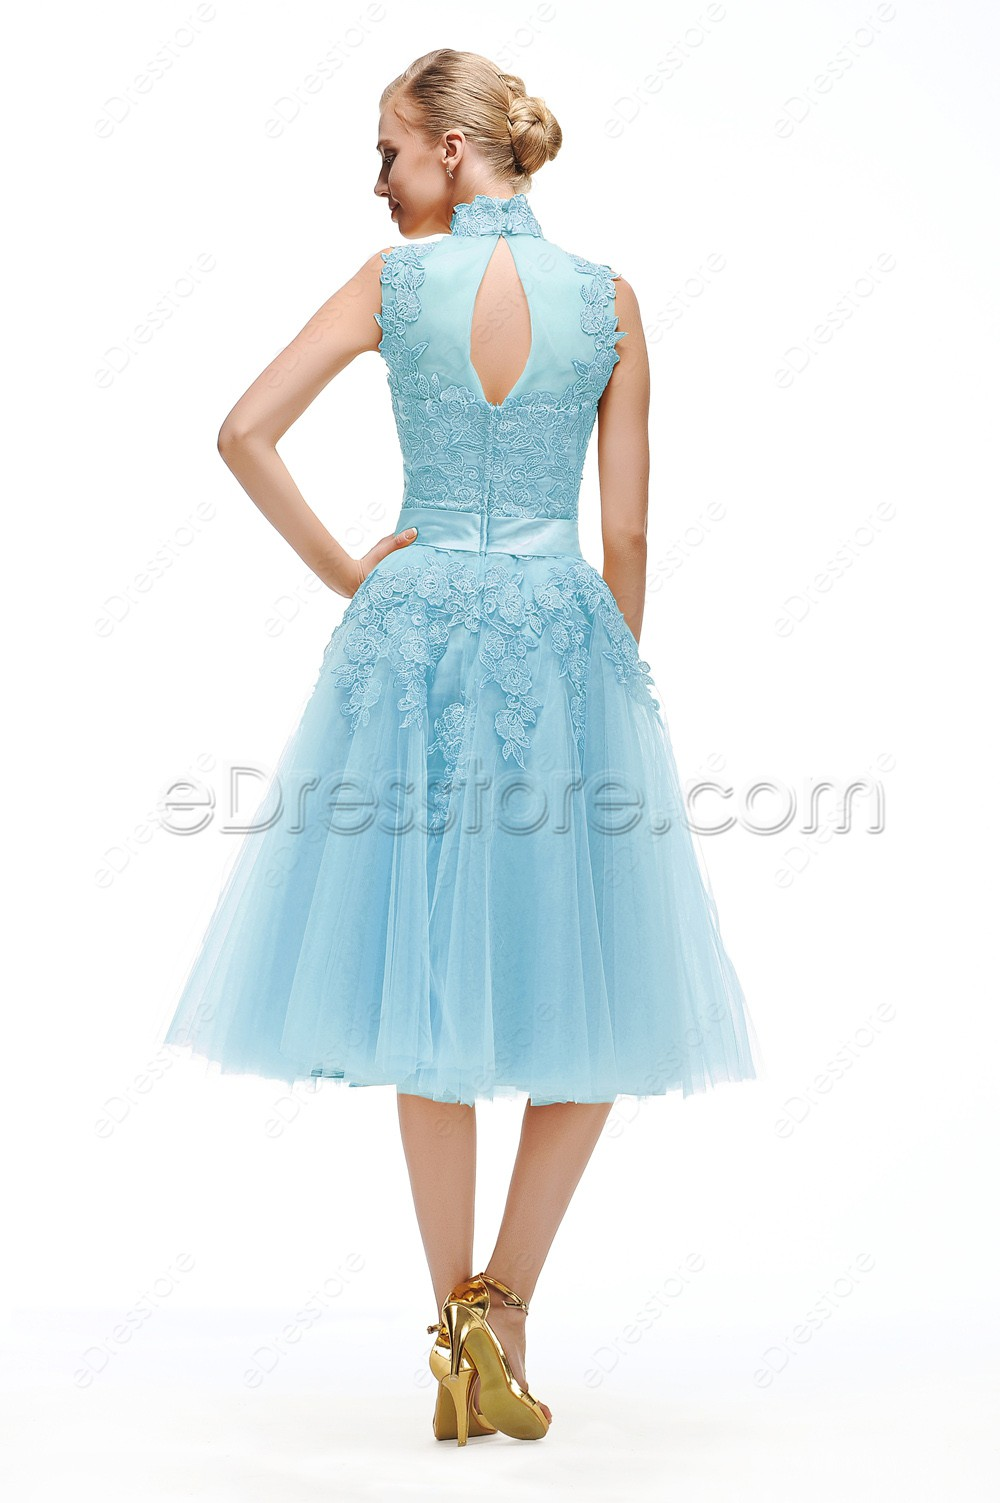 Cheap Tea Length Prom Dresses - Homecoming Prom Dresses